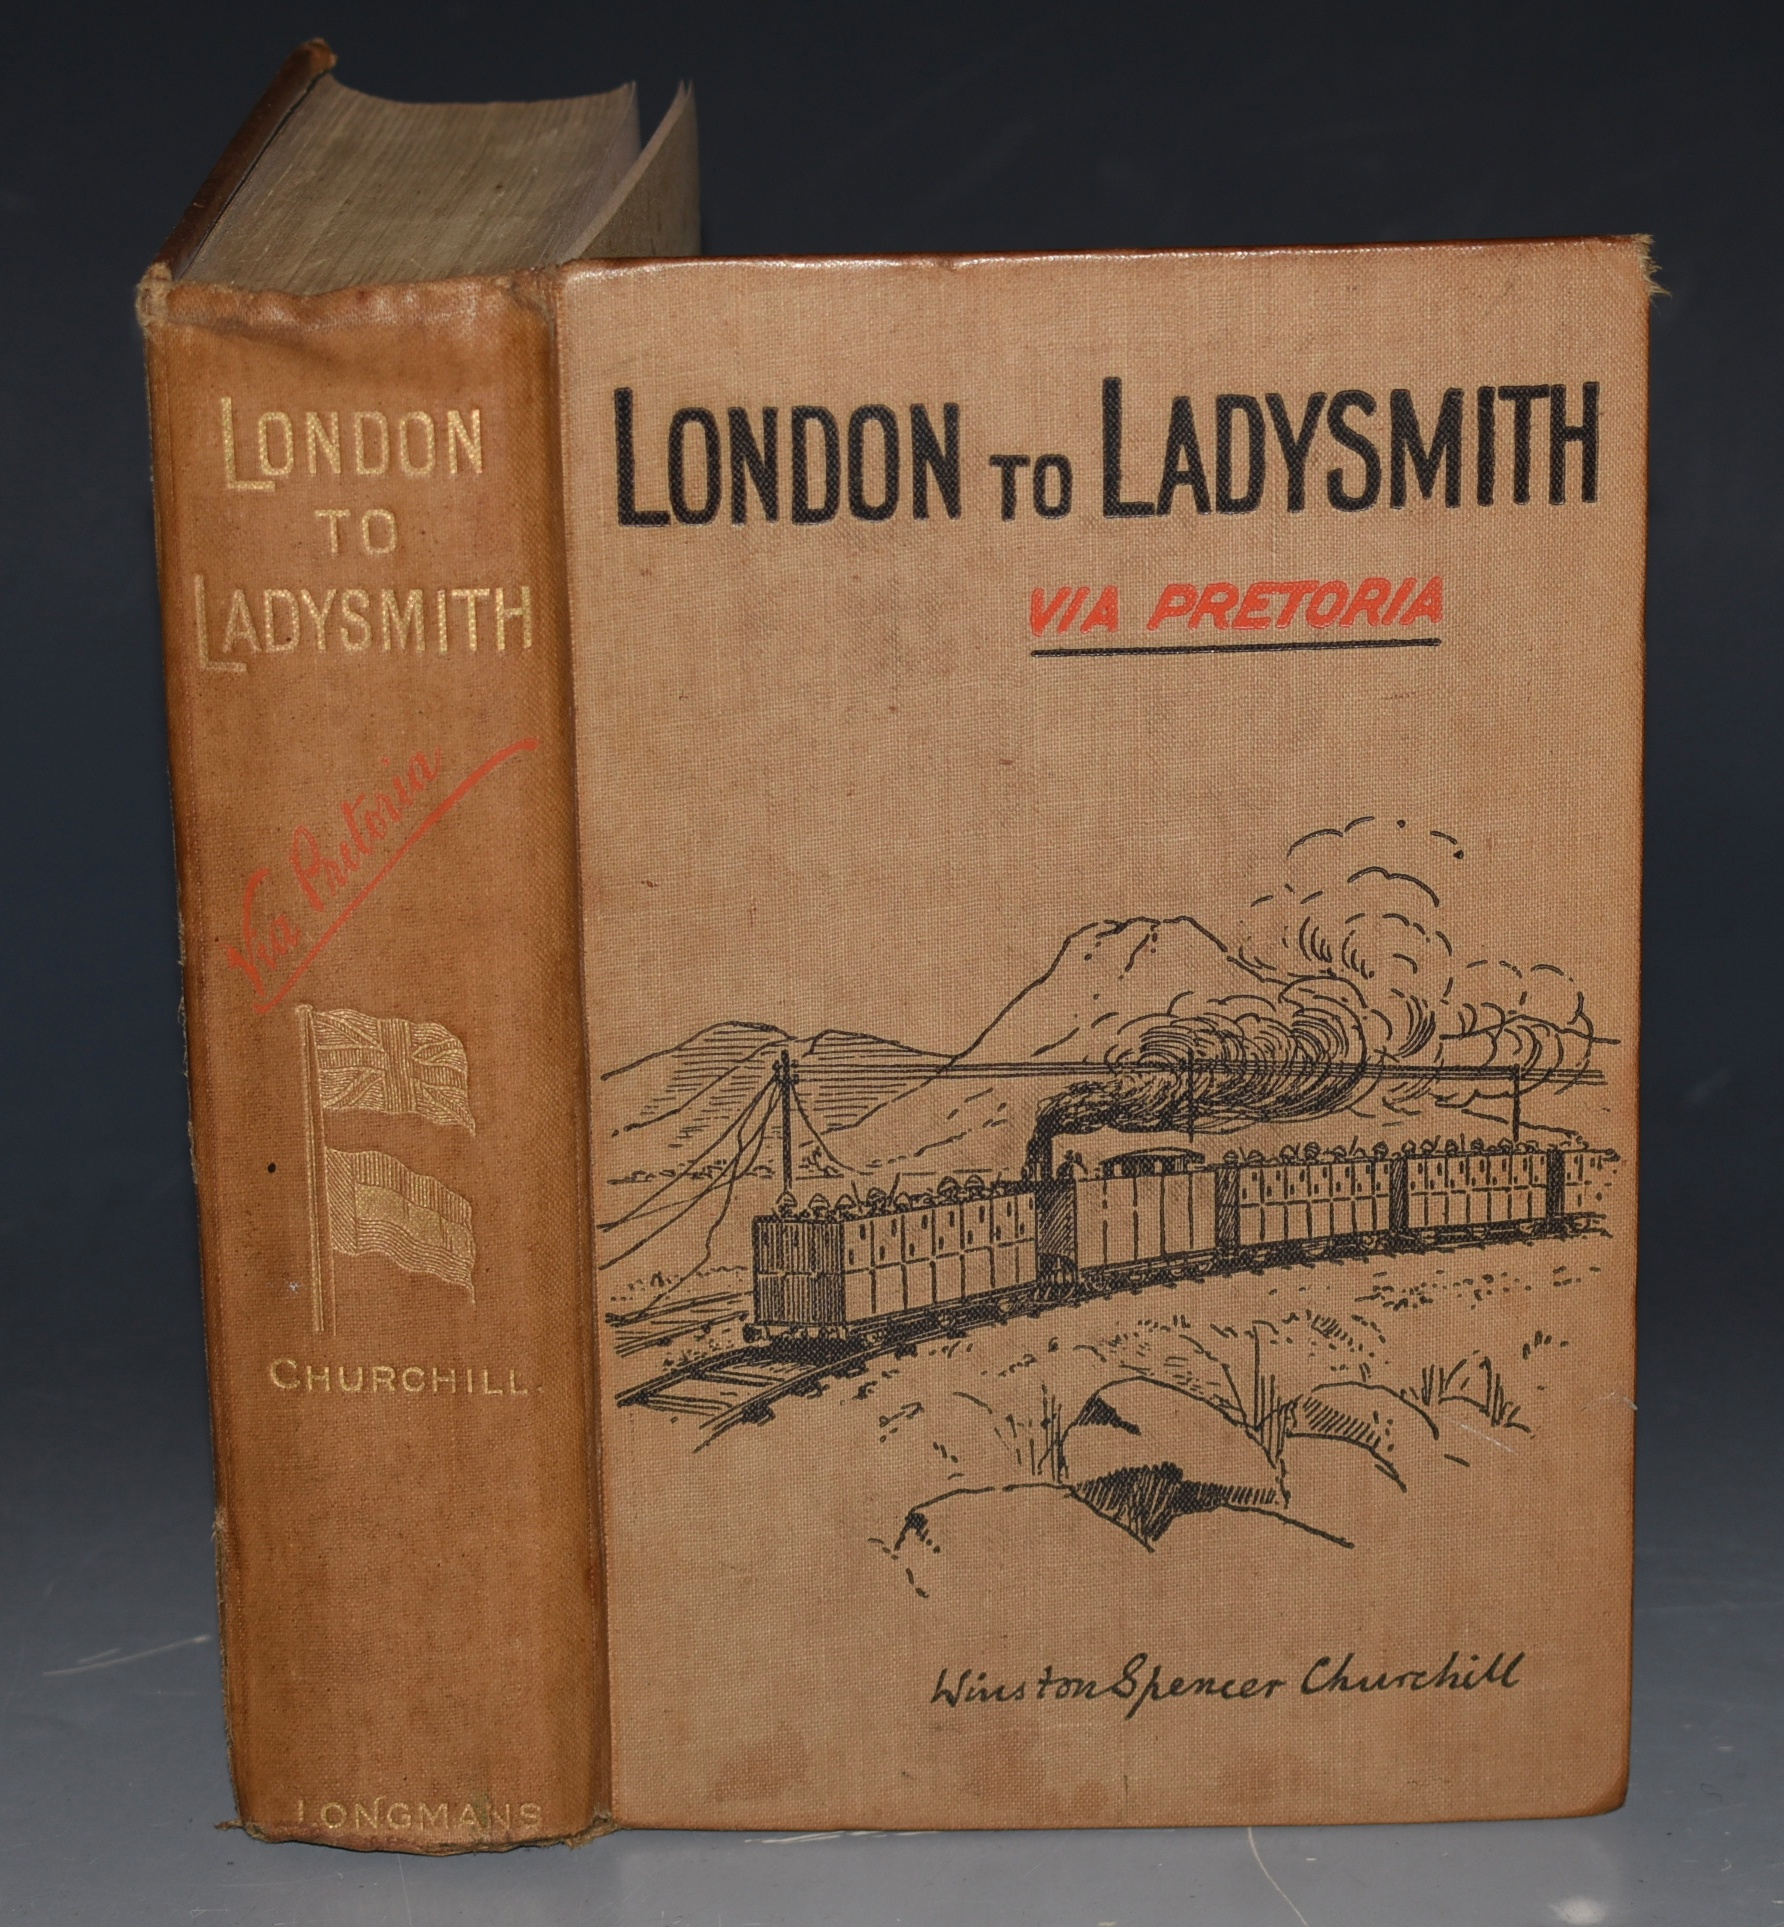 Image for London to Ladysmith via Pretoria. Very Good First Edition Copy with Map.